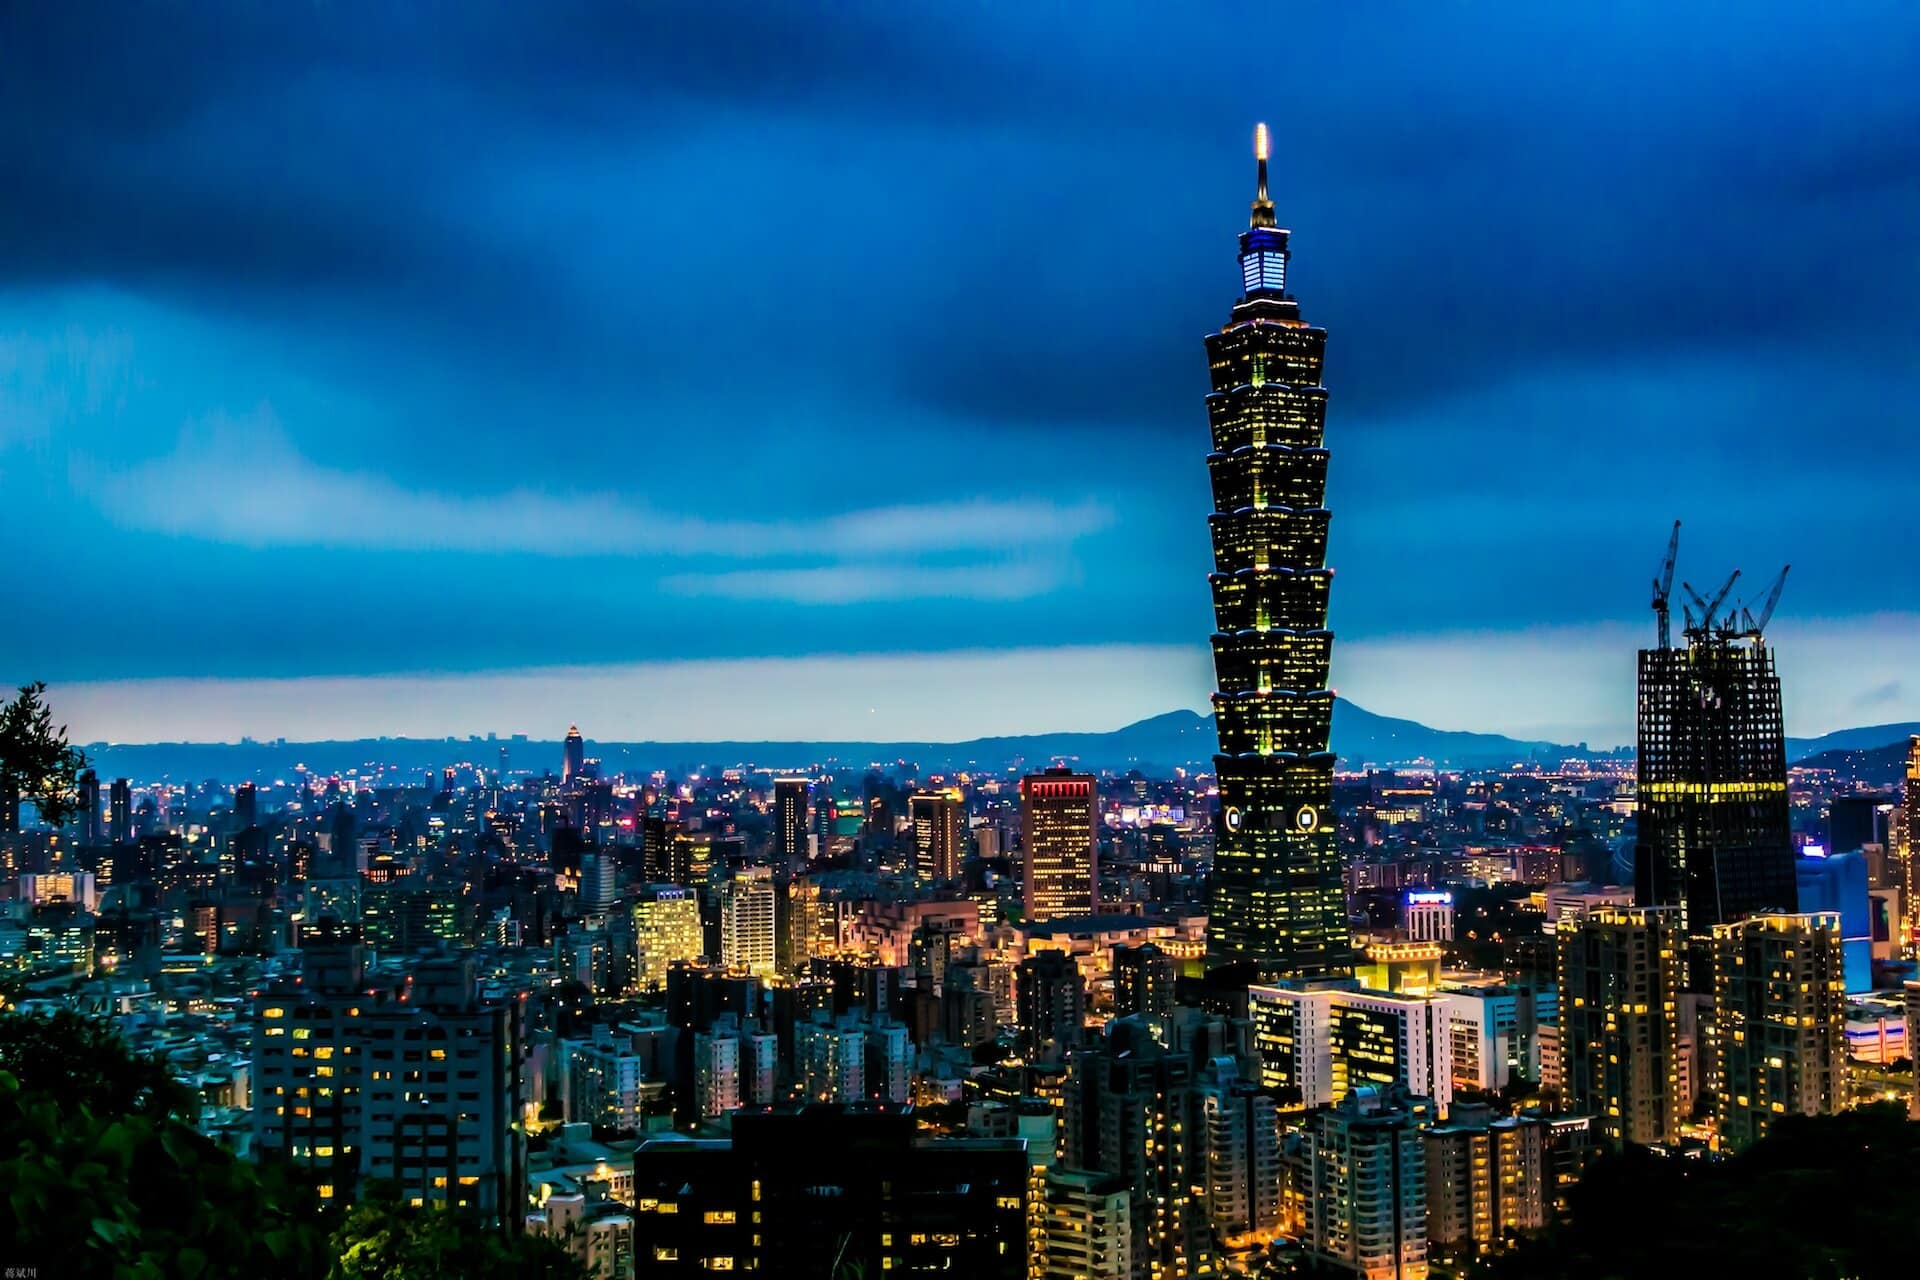 Top Startups entreprenurs moving to Taipei 2019